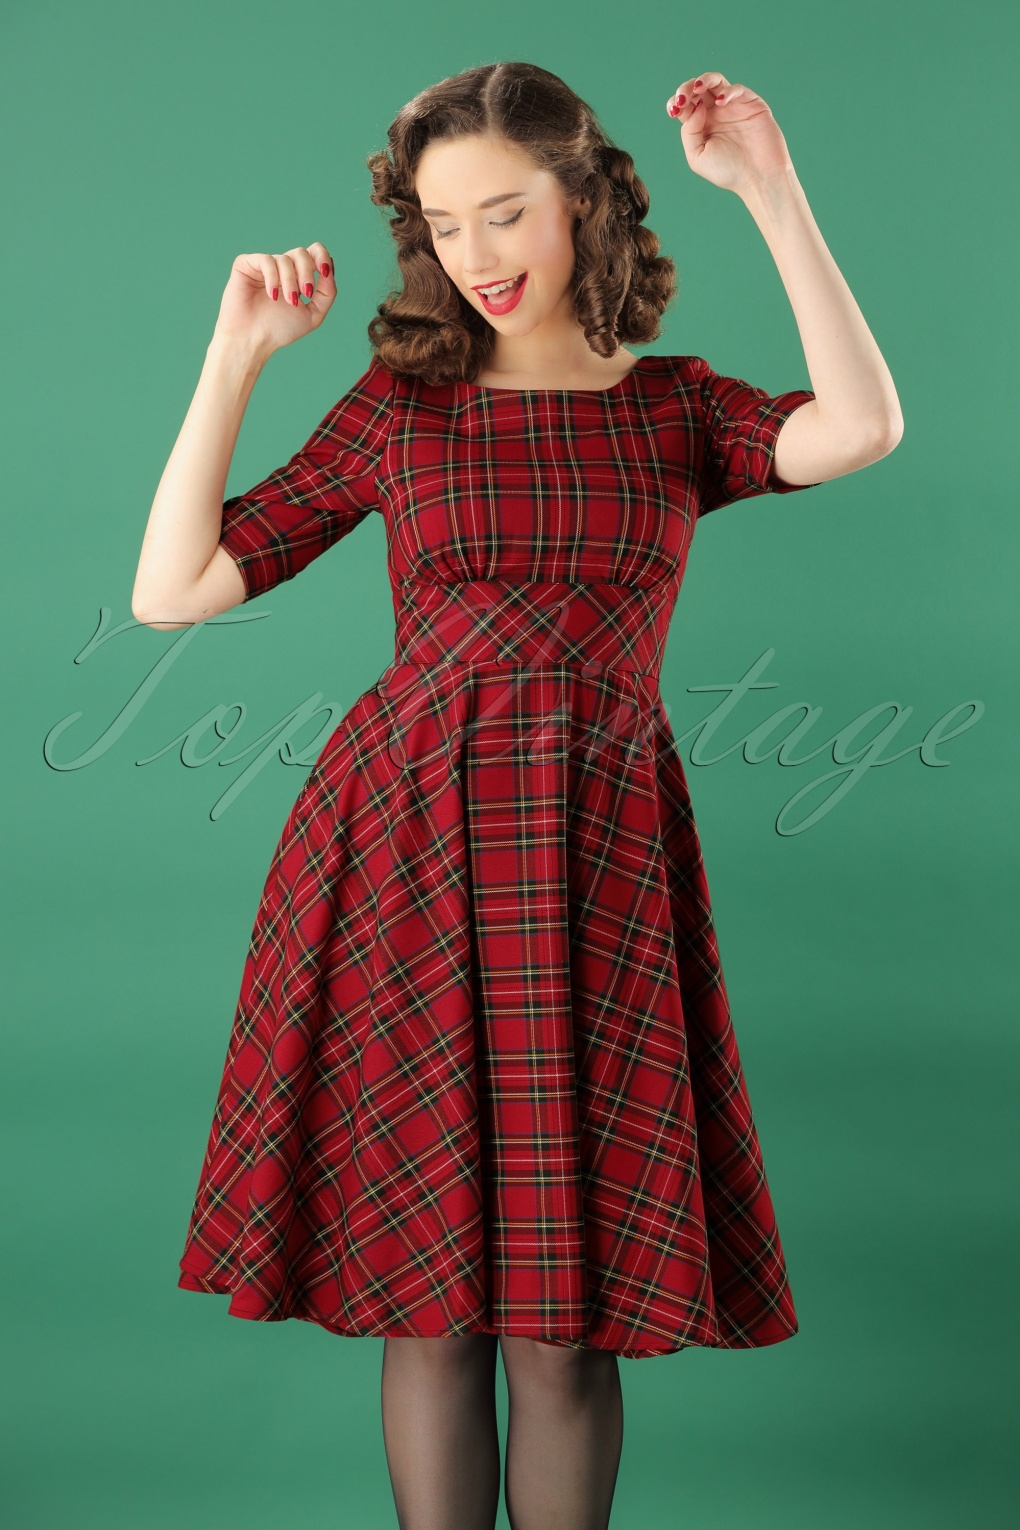 Vintage Christmas Gift Ideas for Women 50s Irvine Tartan Swing Dress in Red £62.35 AT vintagedancer.com